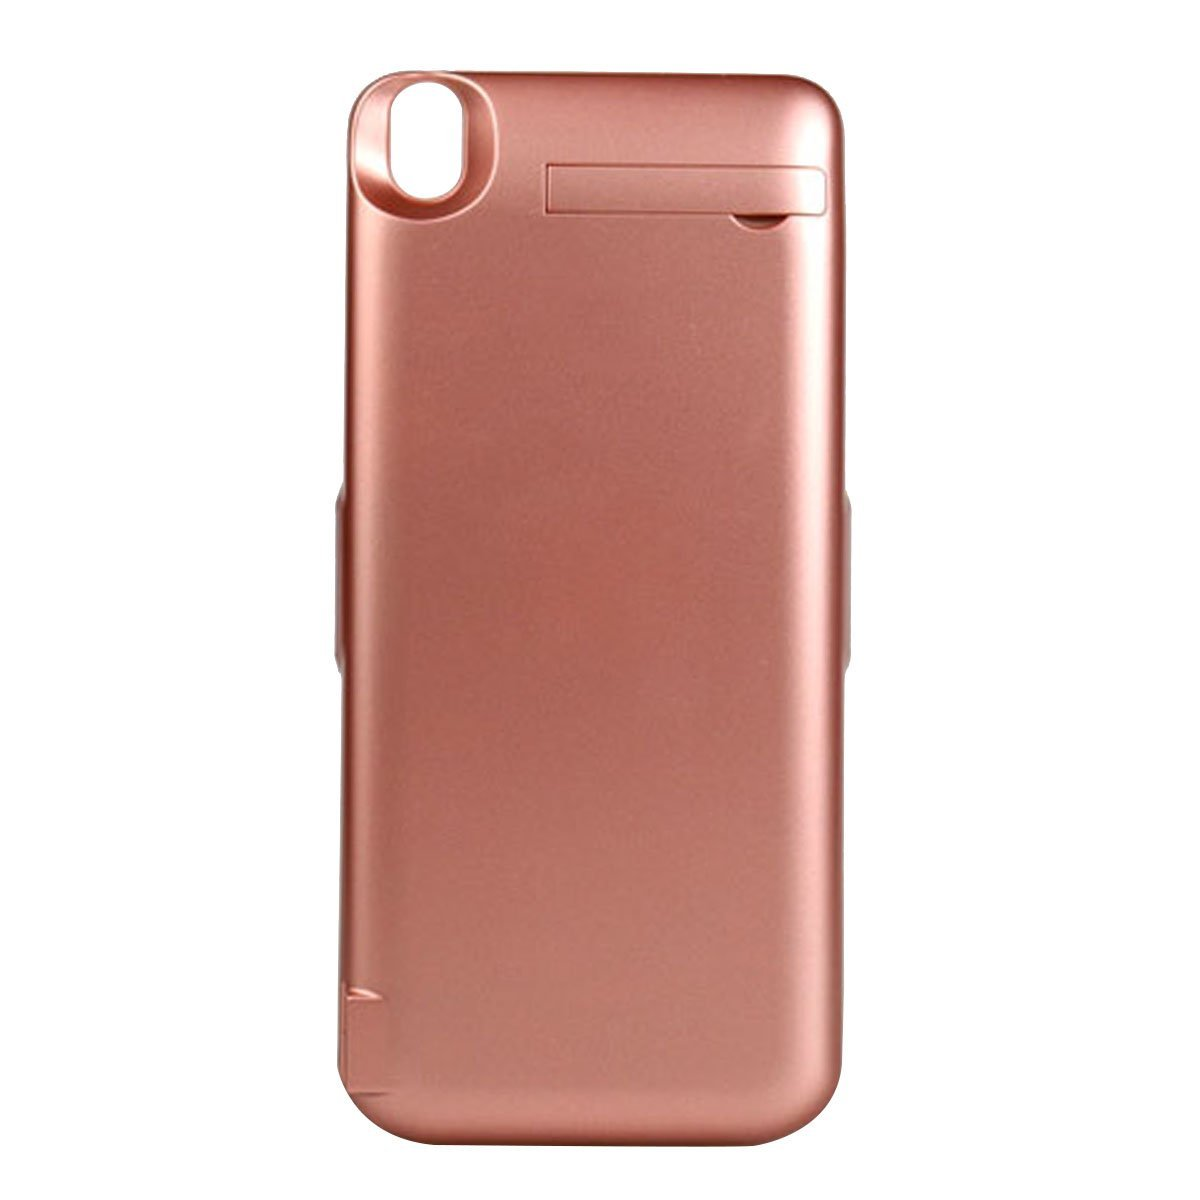 Codream OPPO R9 Plus 8000mAh Battery Case Juice Pack Slim Rechargeable Charging Case Portable External Charger Power Case for OPPO R9 Plus 8000mAh Extended Battery Pack - Rose Gold